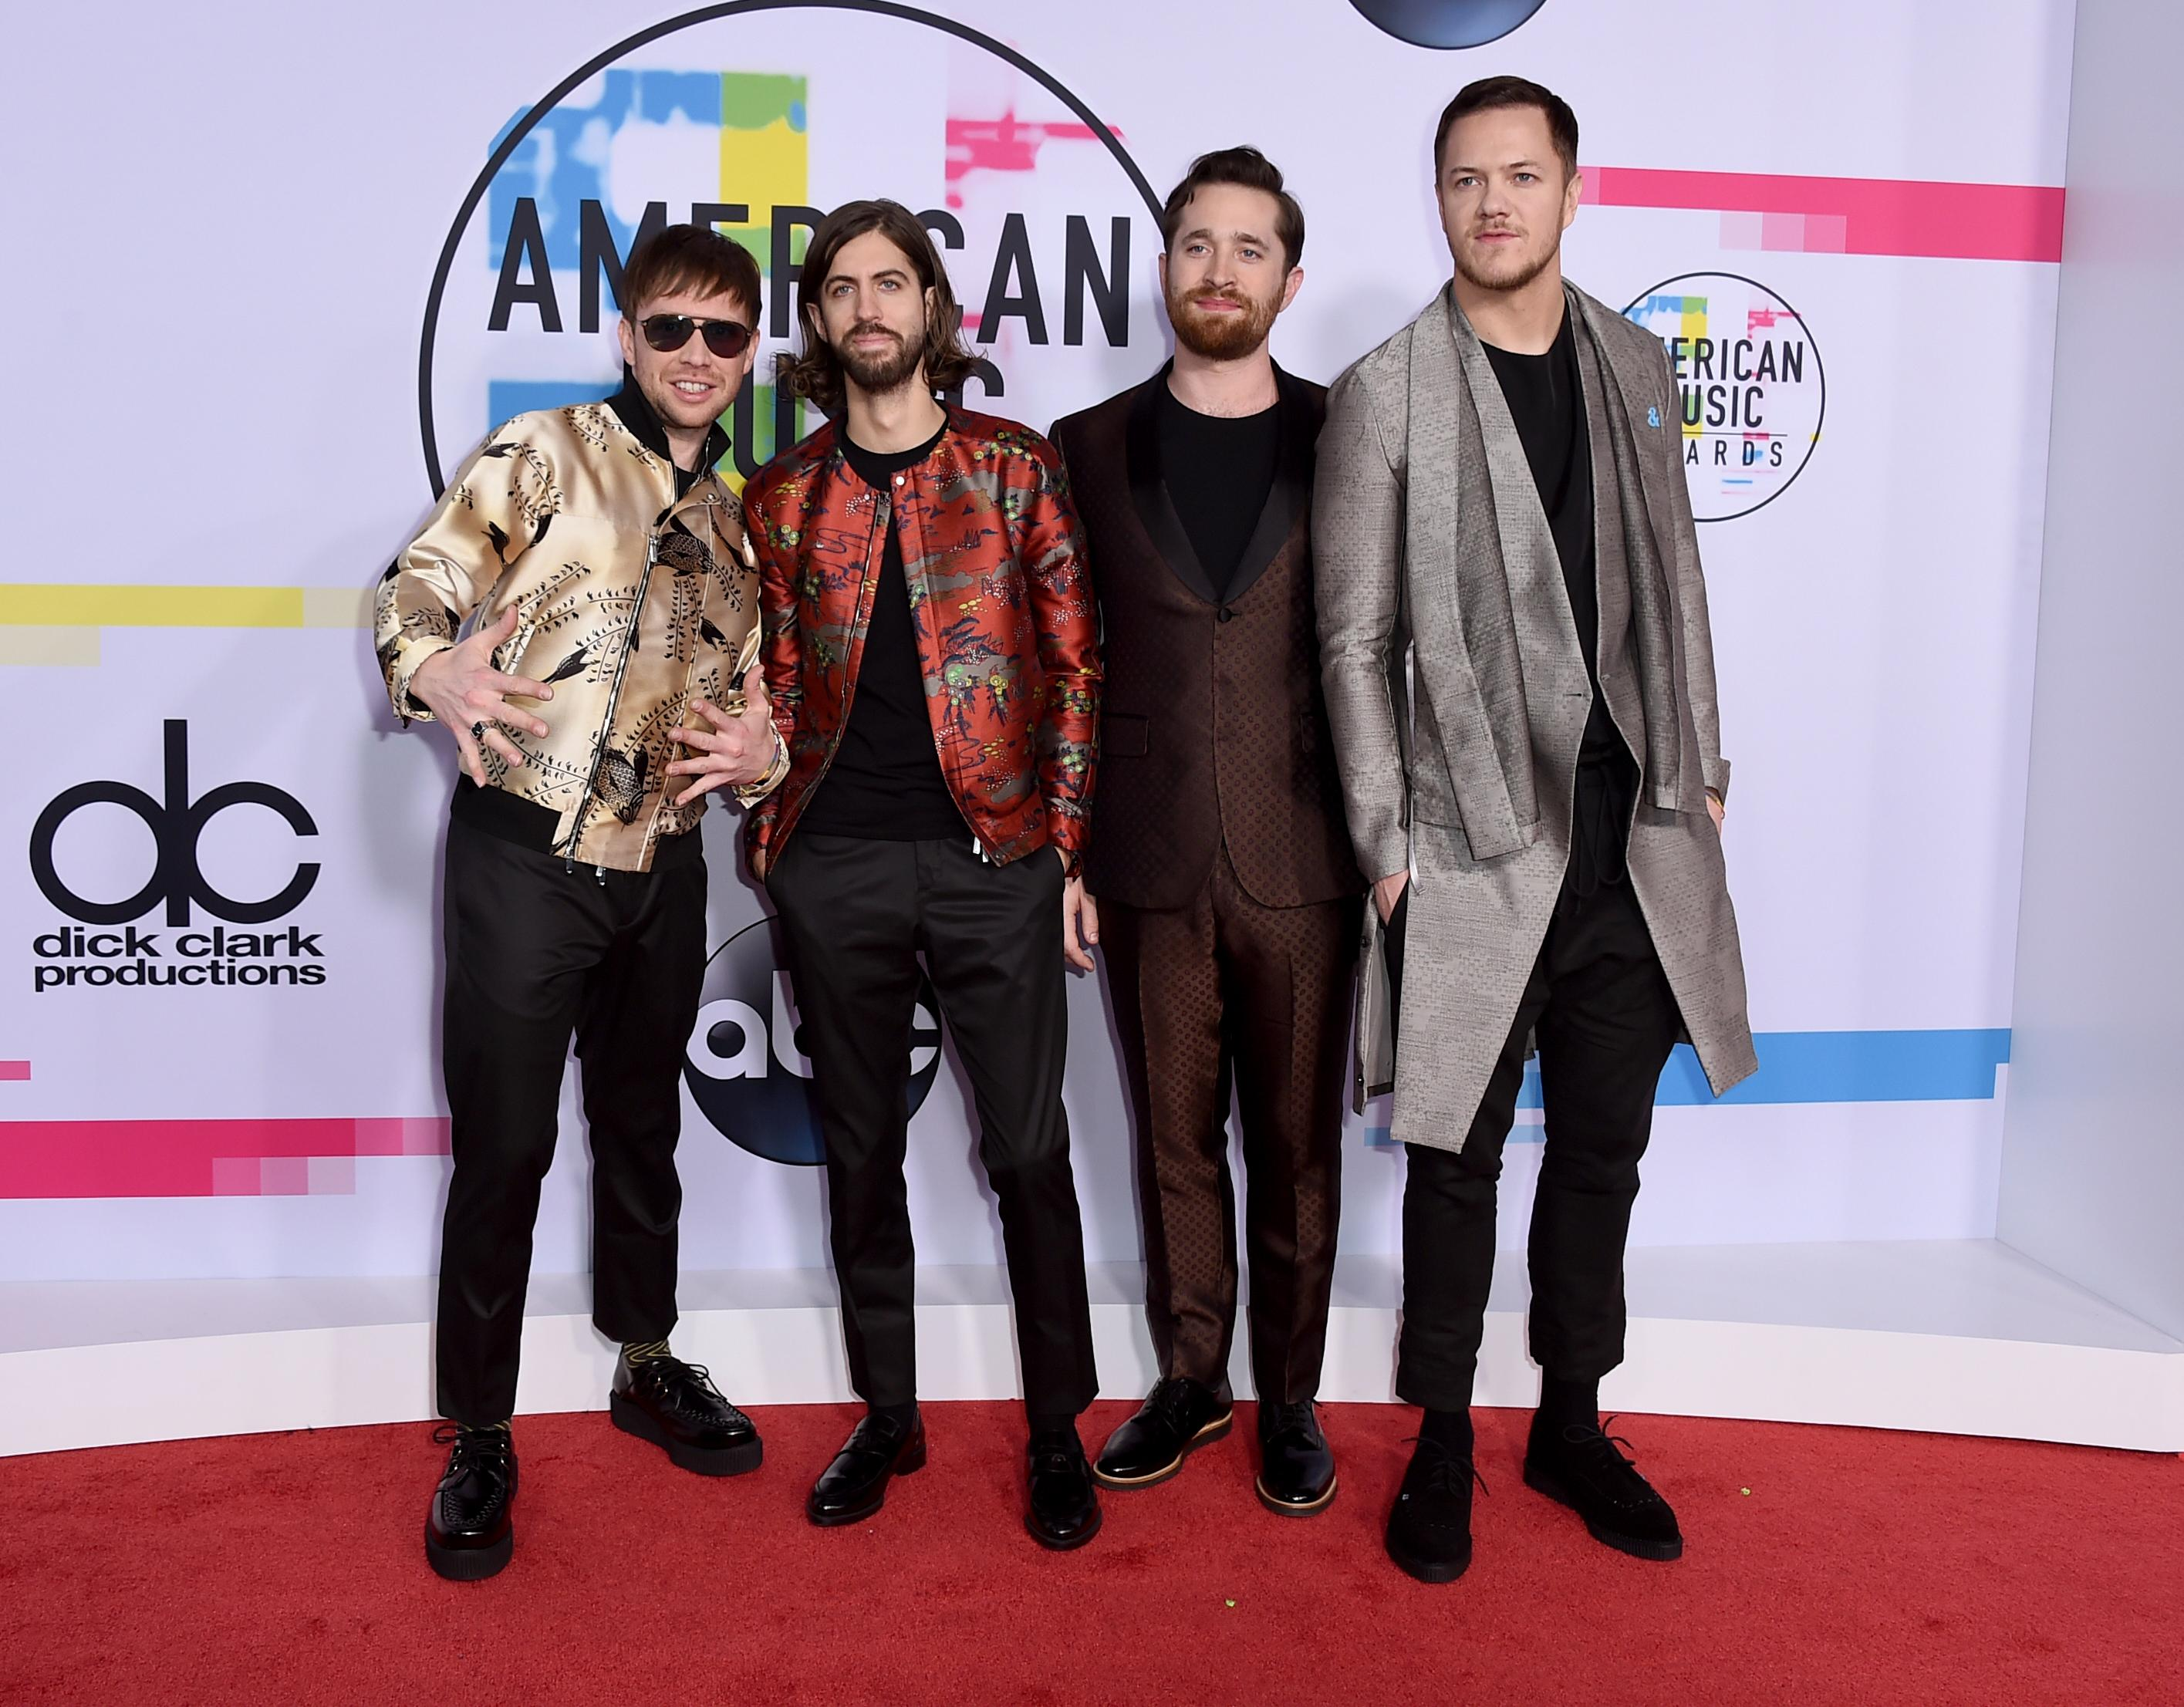 Ben McKee, from left, Daniel Wayne Sermon, Daniel Platzman, and Dan Reynolds of Imagine Dragons arrive at the American Music Awards at the Microsoft Theater on Sunday, Nov. 19, 2017, in Los Angeles. (Photo by Jordan Strauss/Invision/AP)